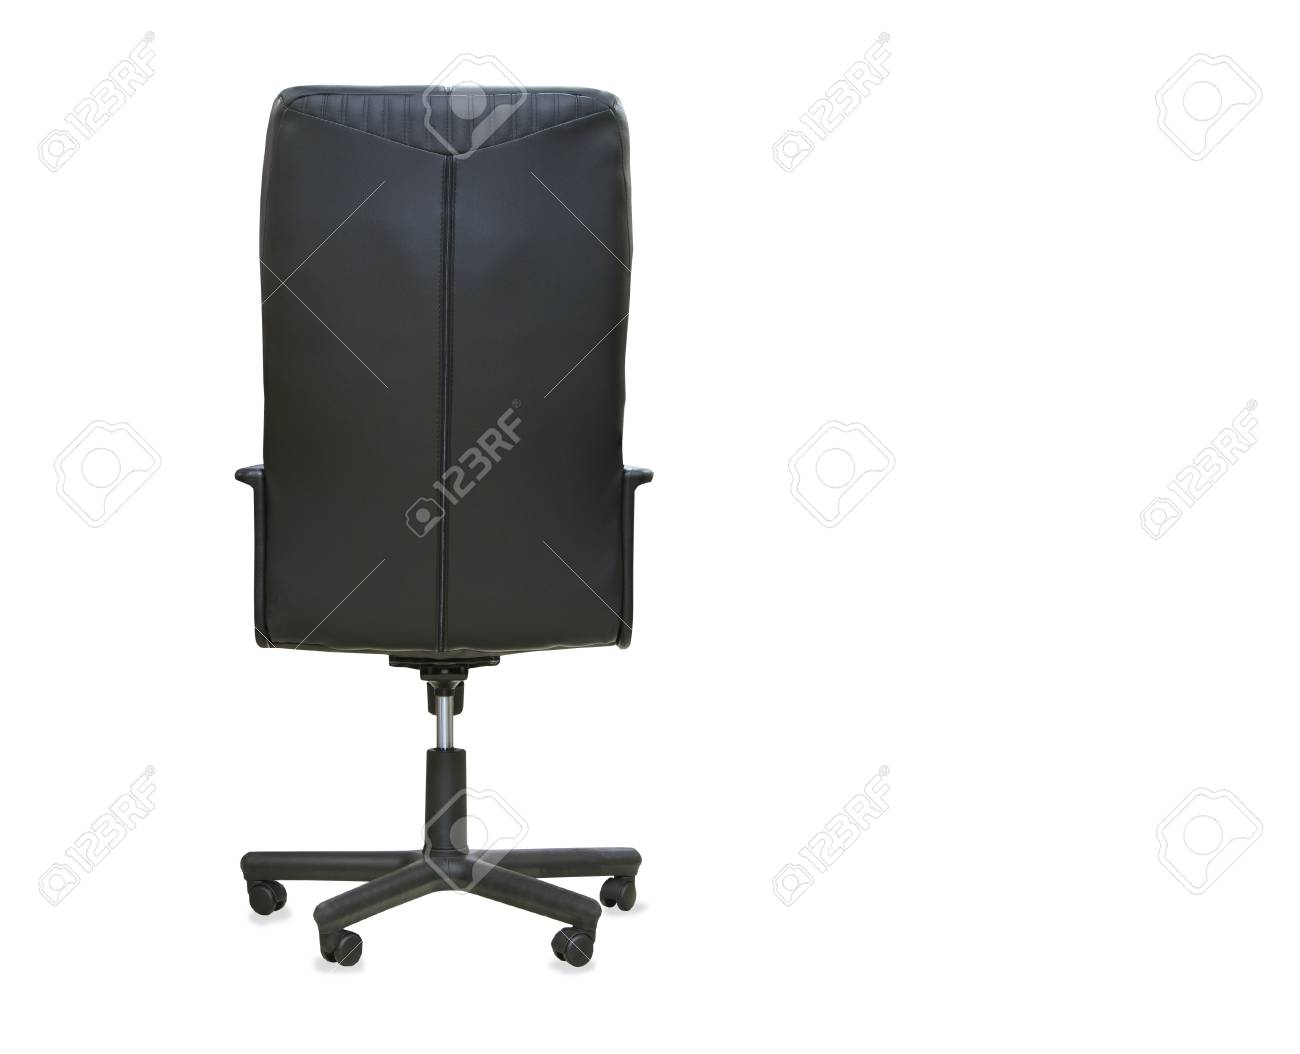 living products chair moq needed design office collections modern century black wholesale lab mn